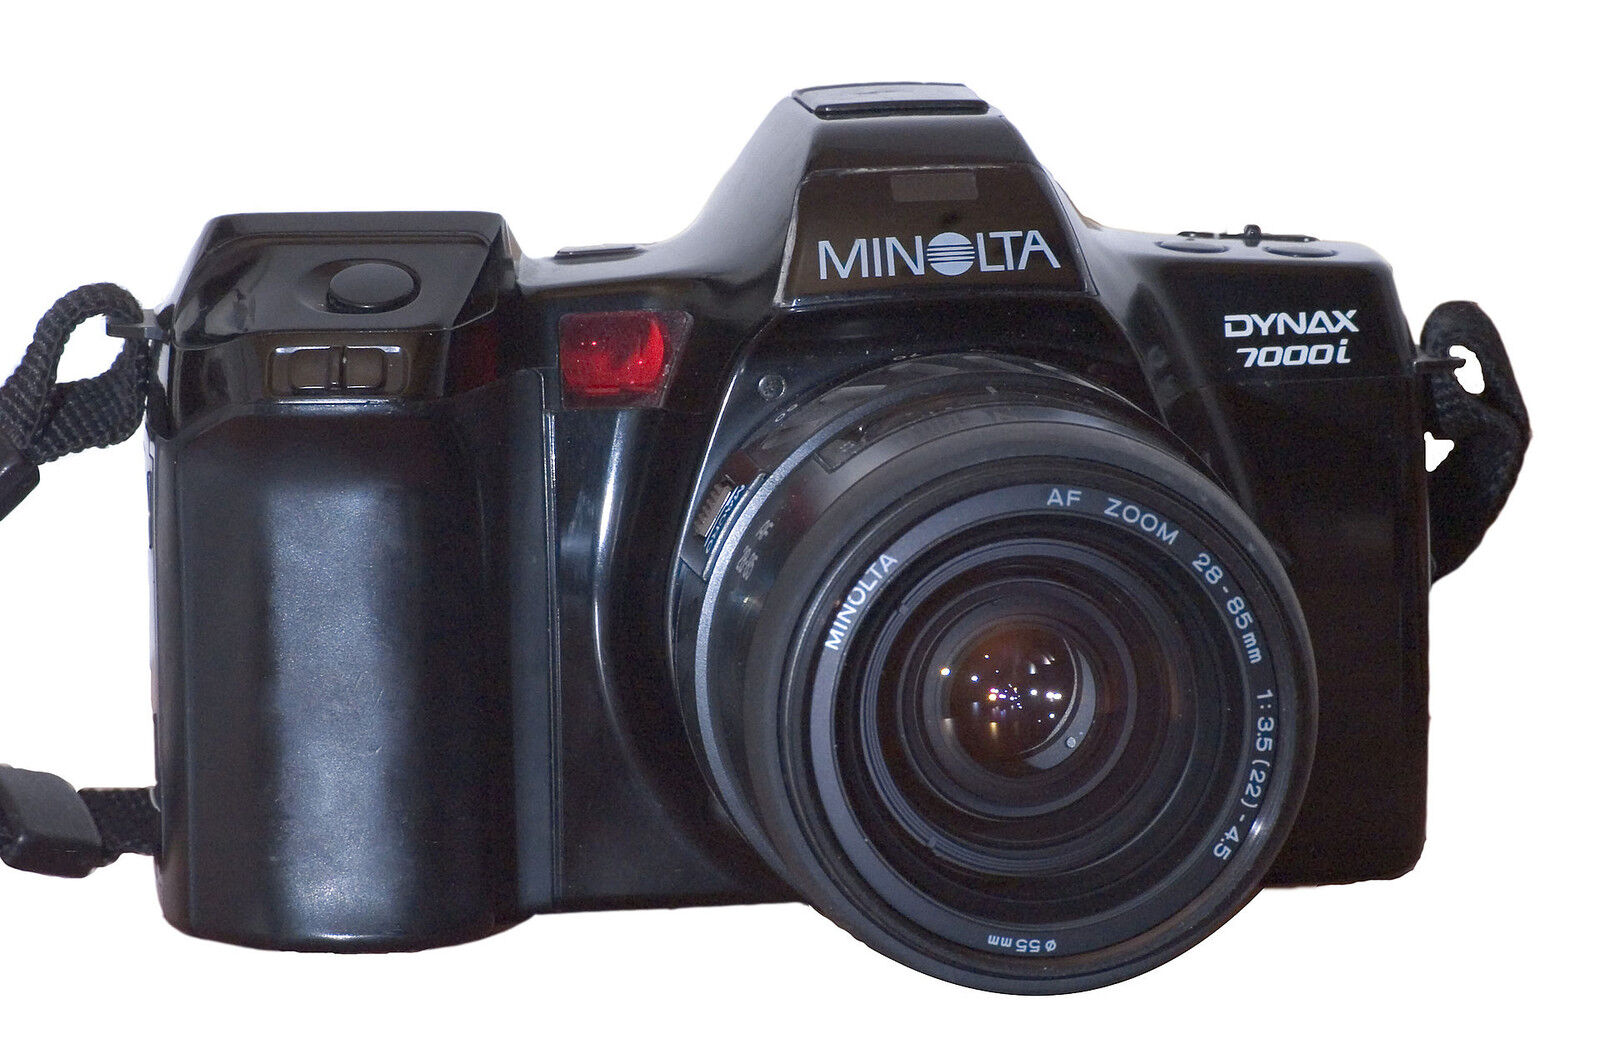 Reviews: Konica-Minolta-Dynax-7000i-35mm-SLR-Film-Camera-Body-Only | eBay